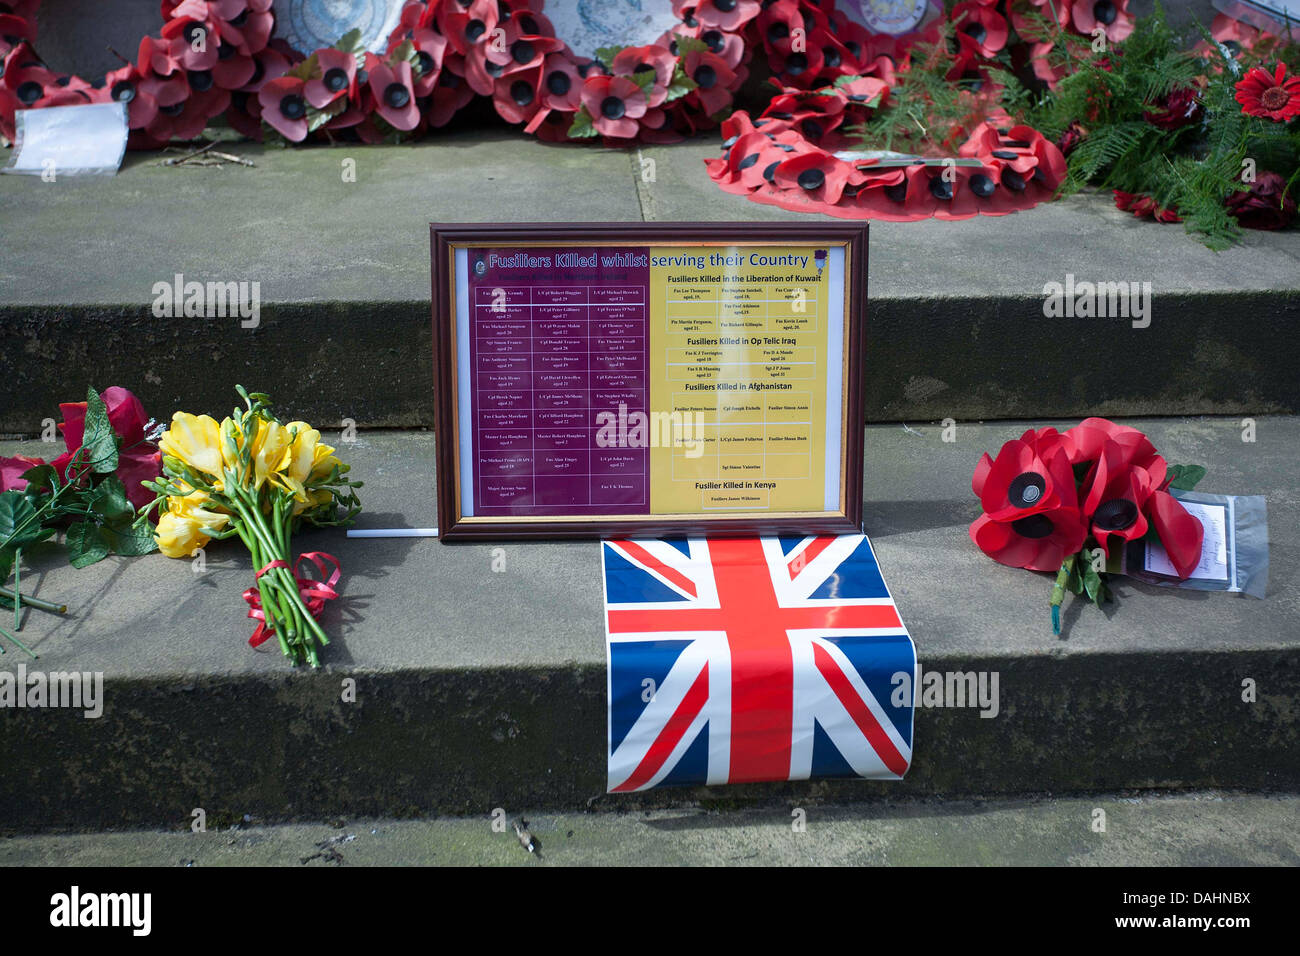 union jack flag and tribute at Cenotaph , St Peter's Square , Manchester - Stock Image